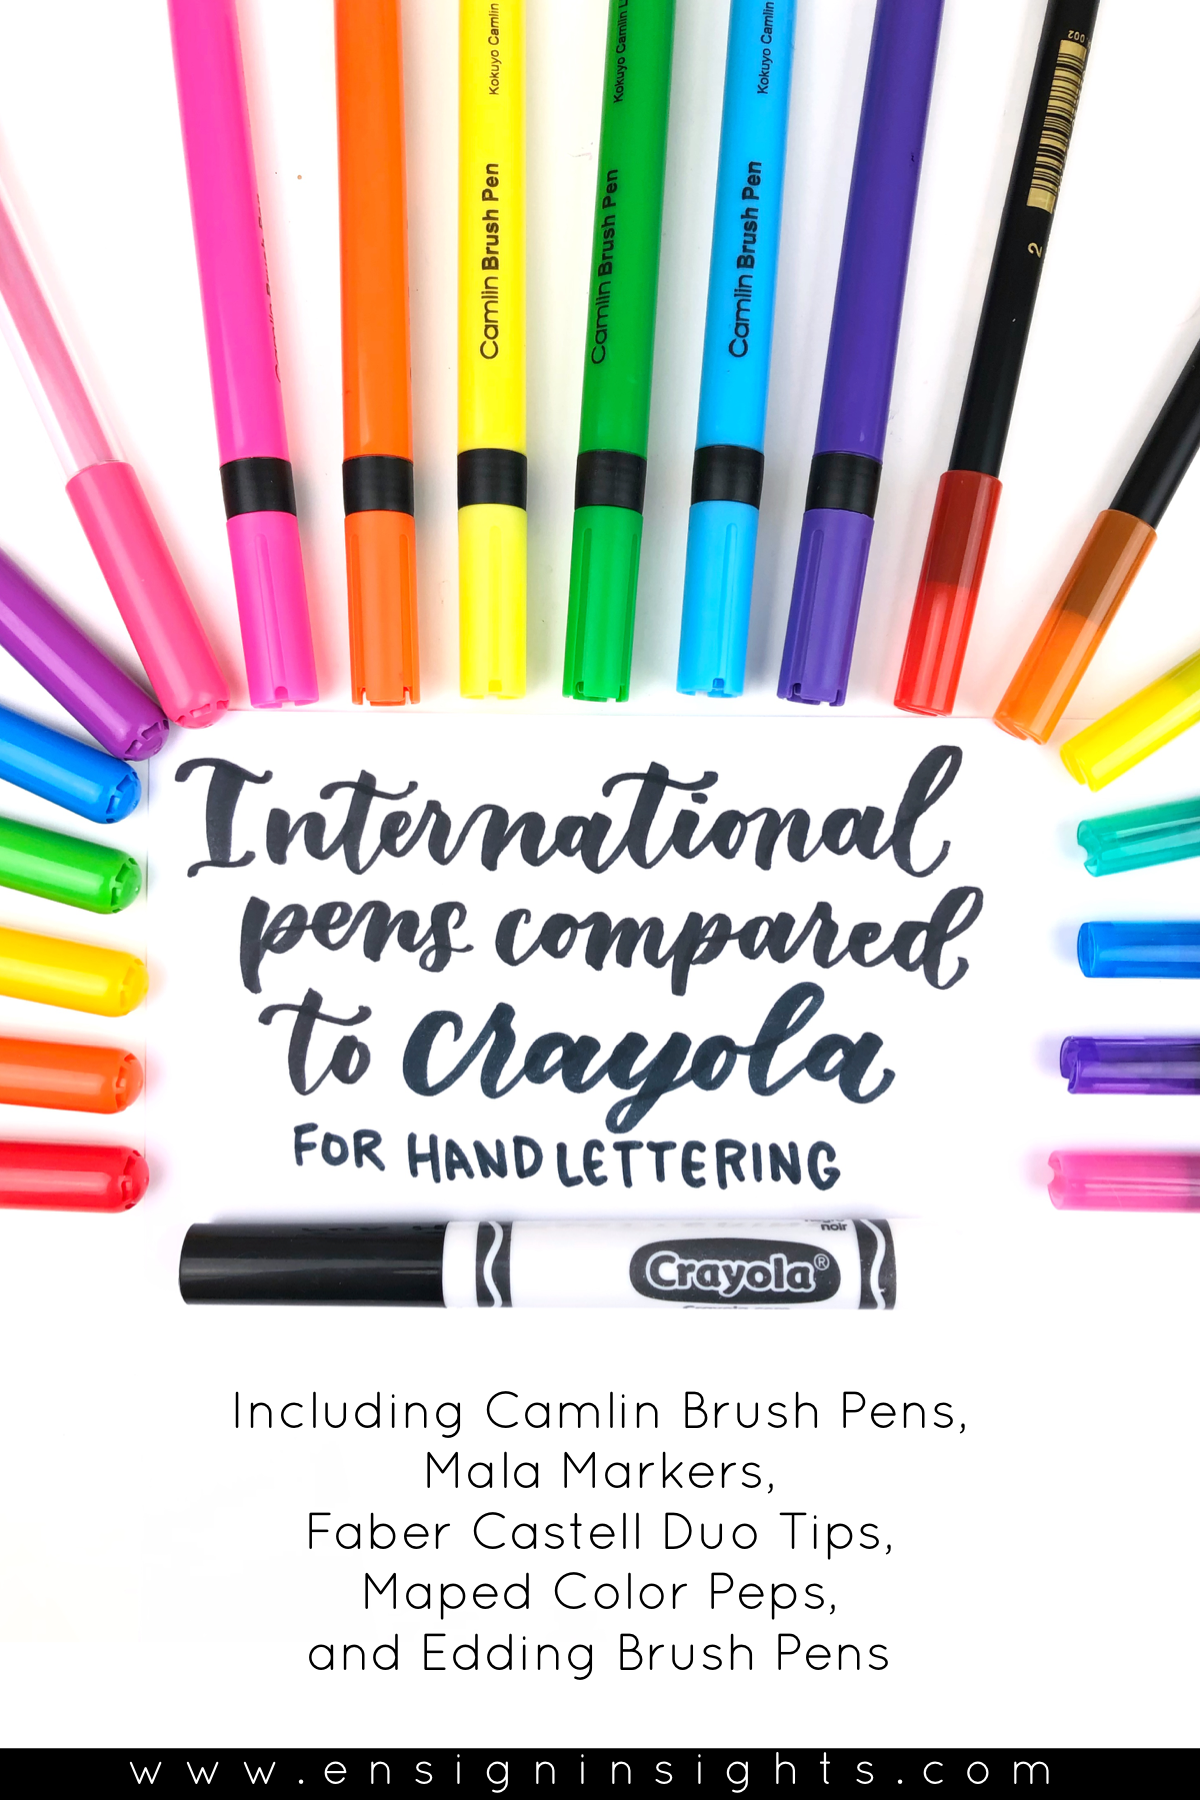 Crayola Markers For Hand Lettering Compared To